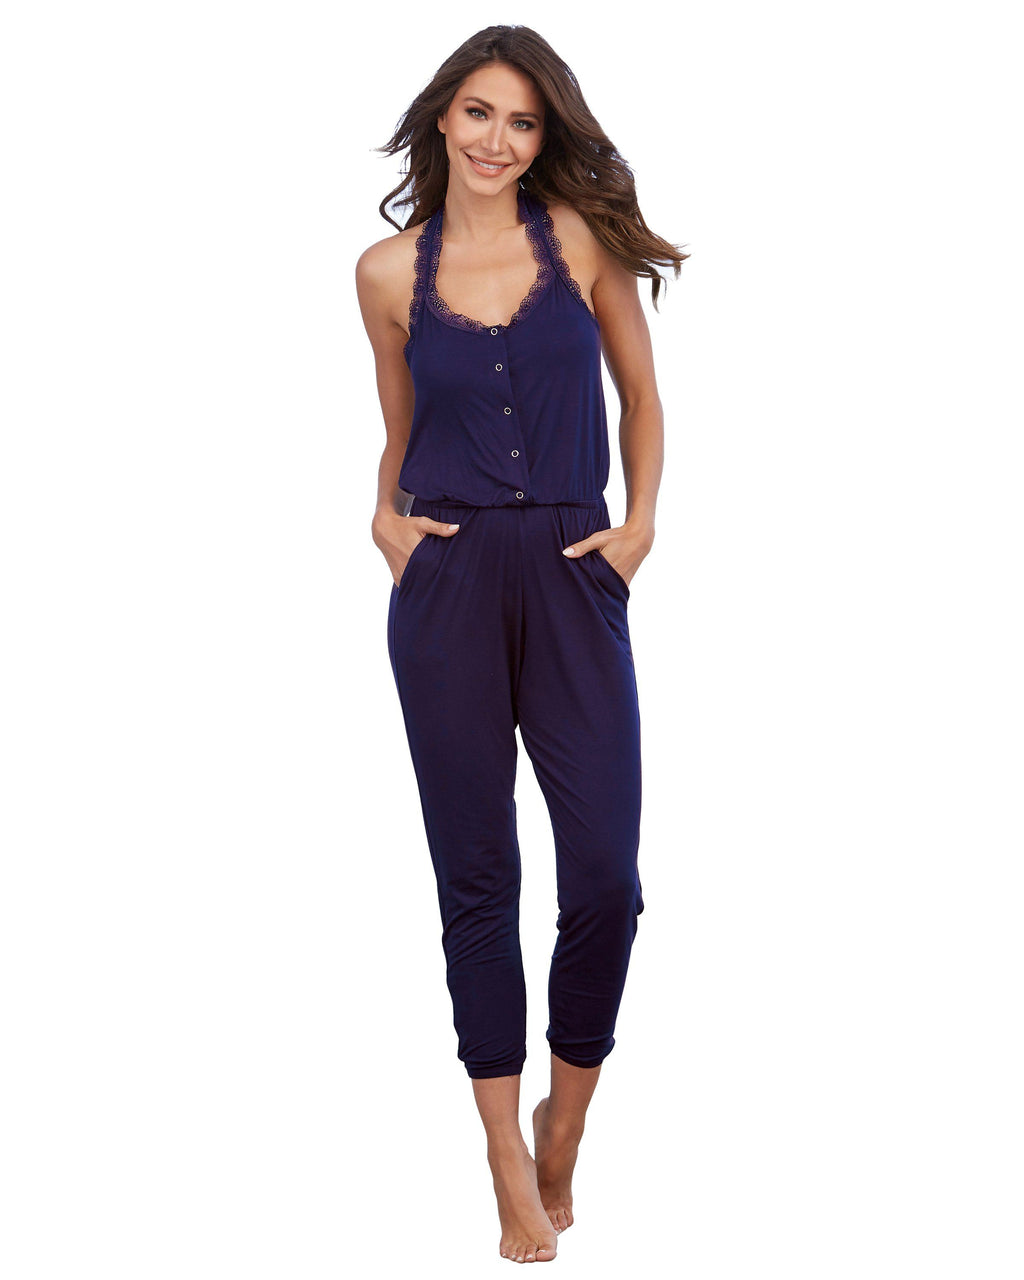 Soft Knit Jersey Sleepwear Jumpsuit with Lace T-Back Sleepwear Jumpsuit Dreamgirl International